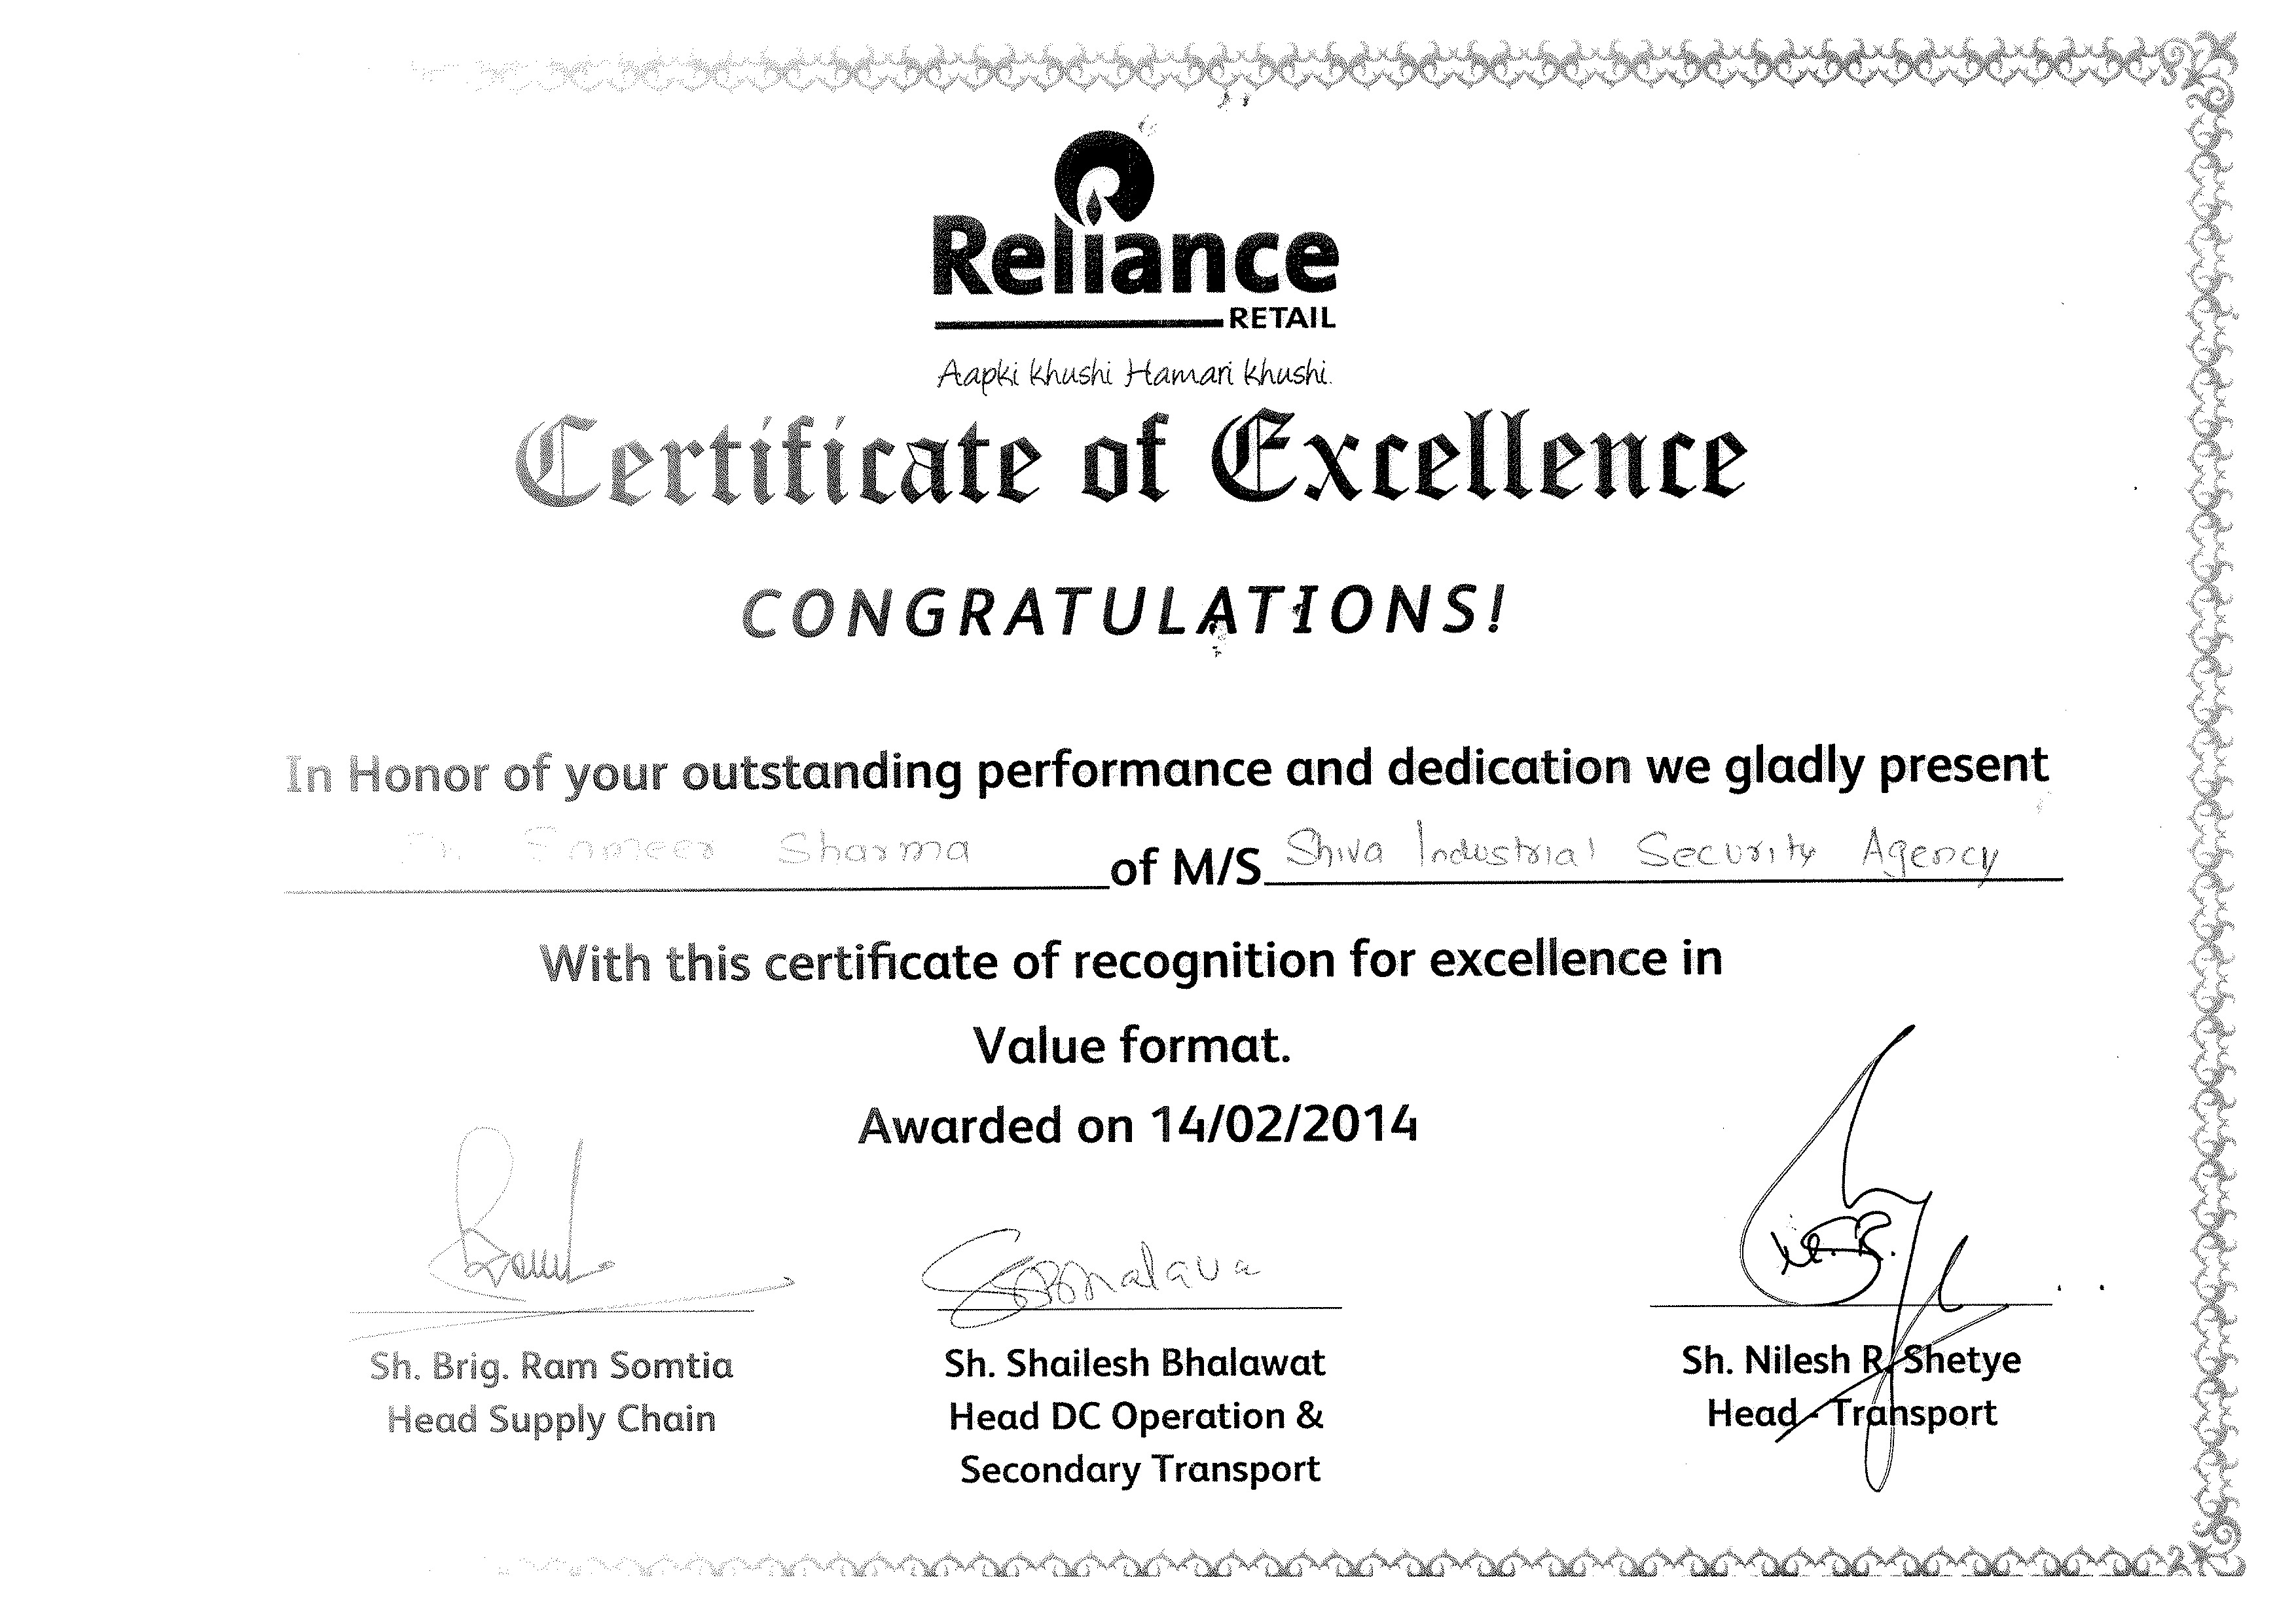 Retail experience certificate sample choice image certificate experience certificate sample security guard choice image experience certificate sample logistics choice image certificate retail experience yadclub Images